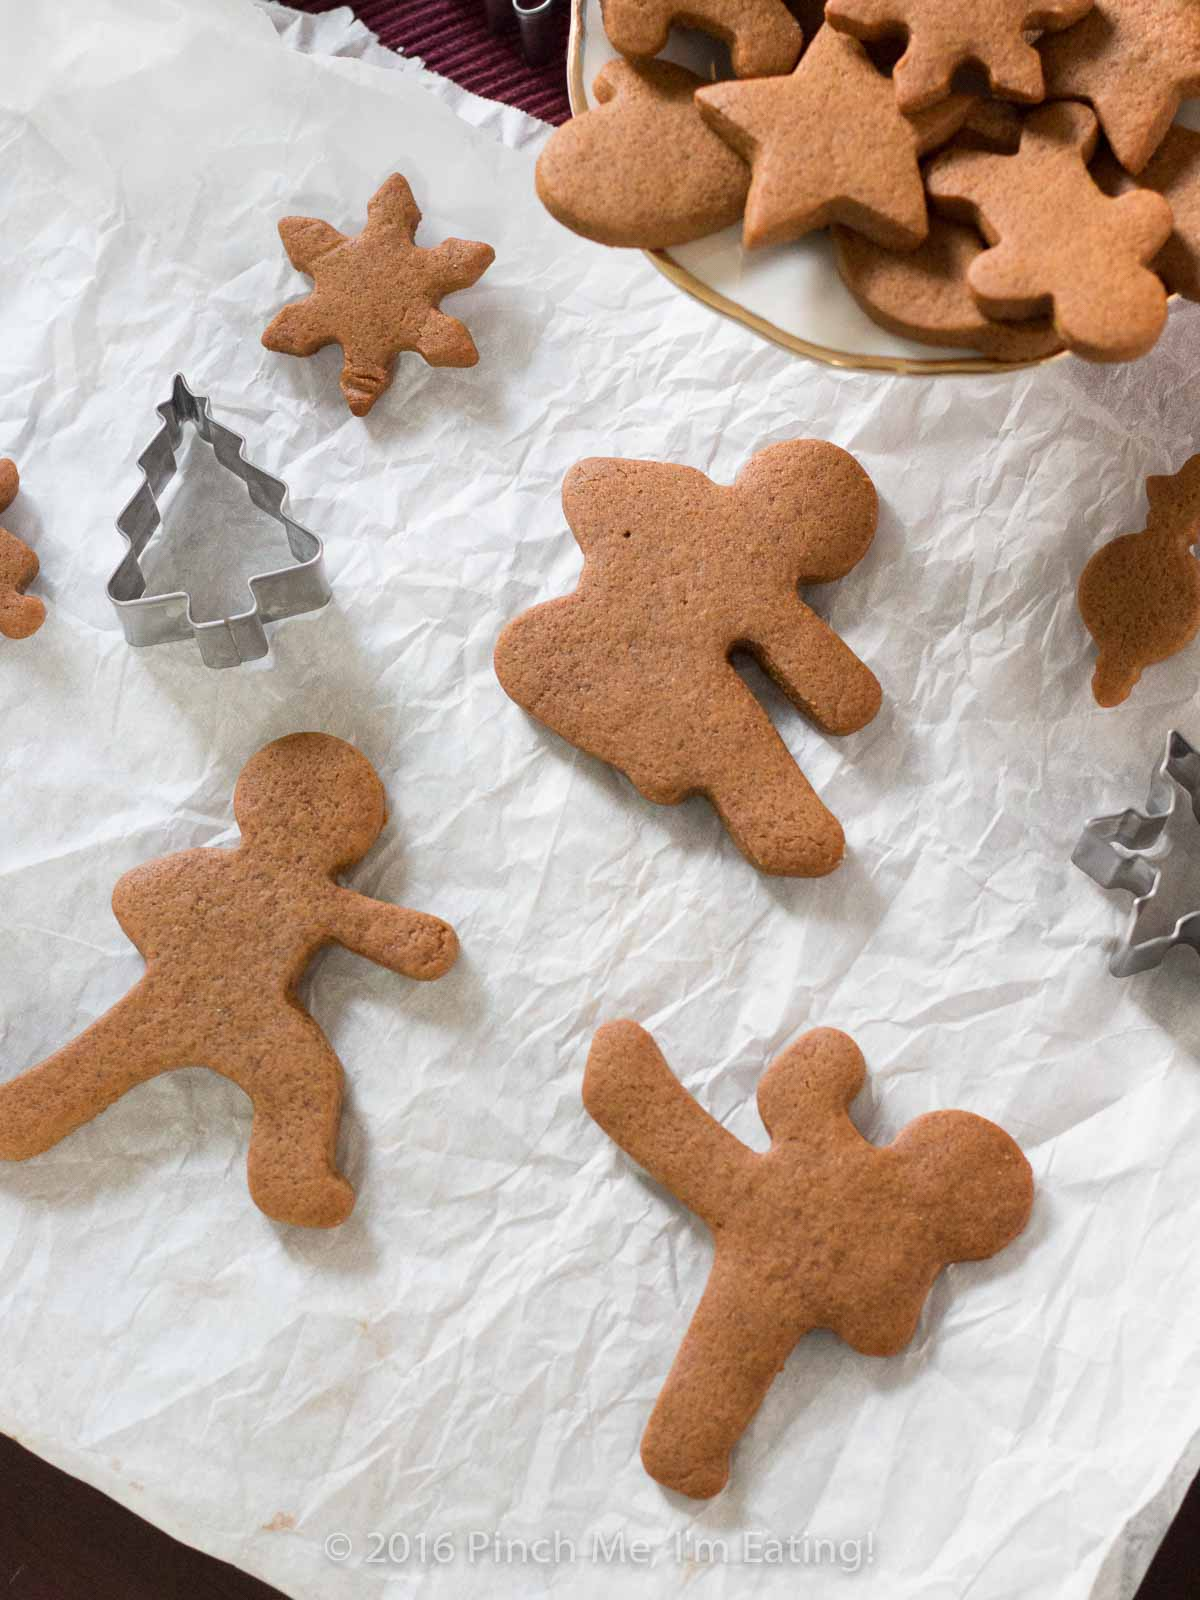 Ninja-shaped chewy gingerbread men, or ninjabread men